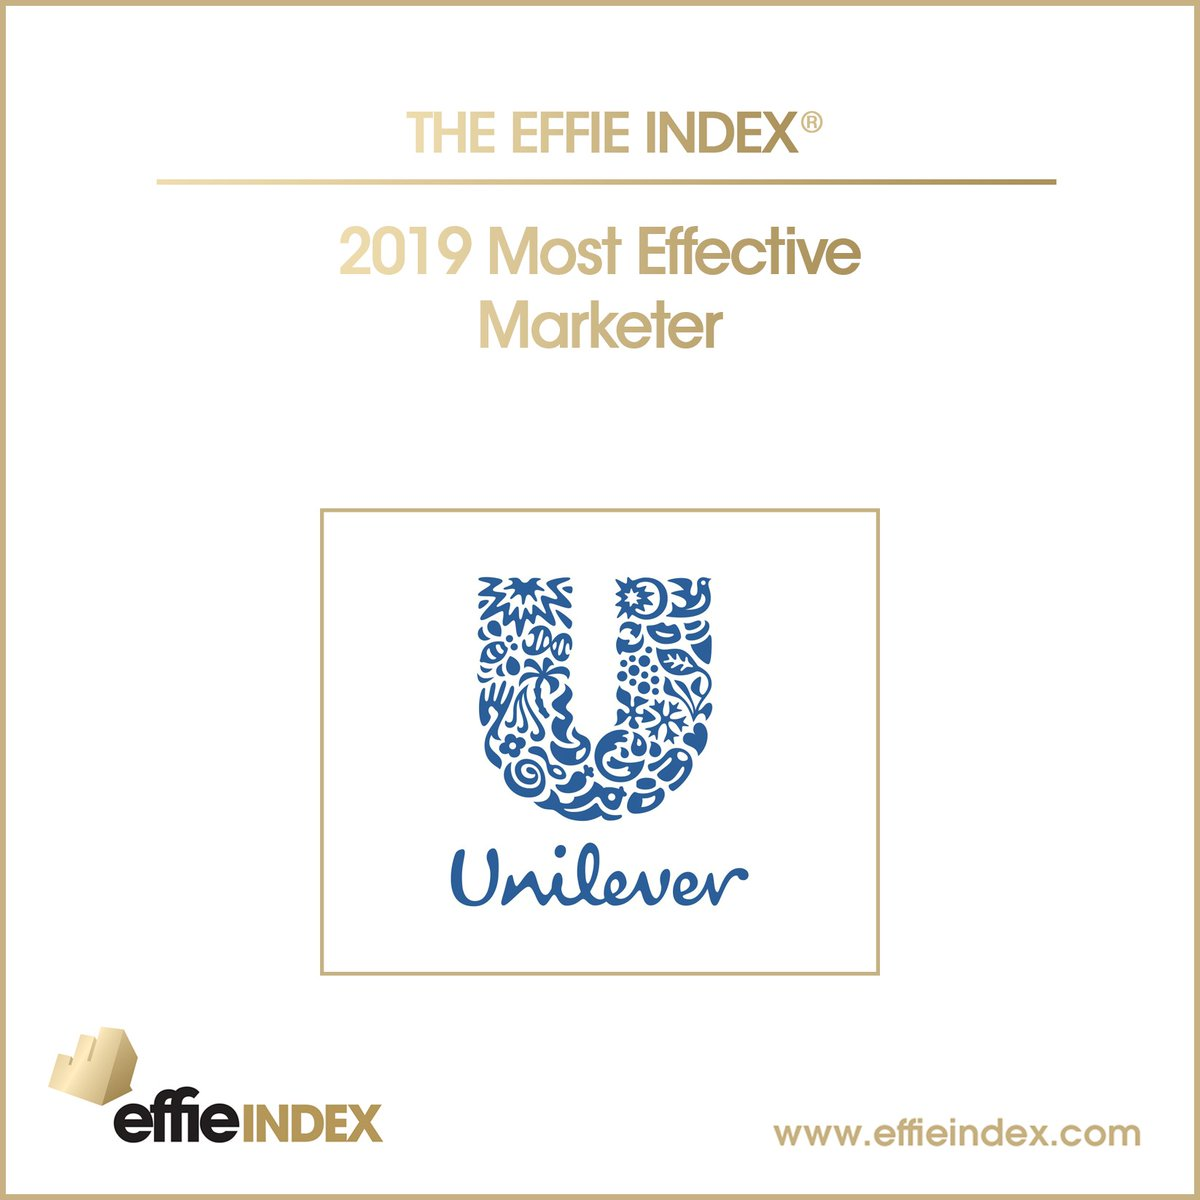 Unilever named the most effective marketer by Effie for the sixth time